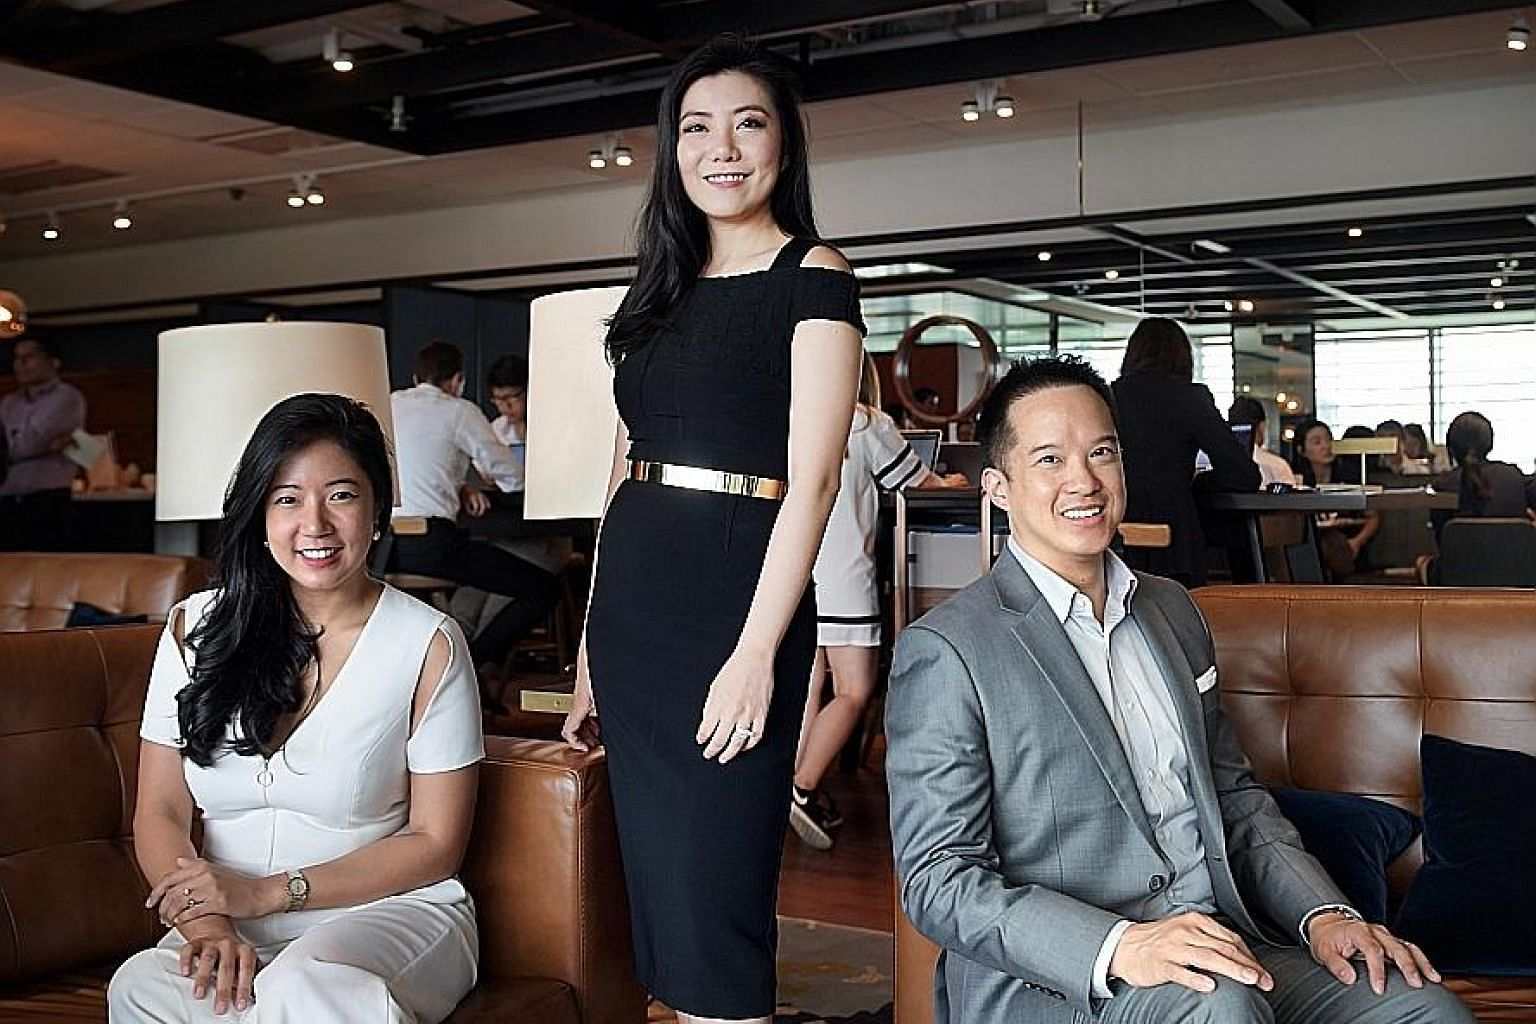 """The Great Room's founders (from left) Su Anne Mi, Jaelle Ang and Yian Huang. Ms Ang said the significance of CapitaLand's investment in the company """"is huge"""" and will help ramp up overseas growth. The brand is looking at opportunities in Hong Kong, J"""